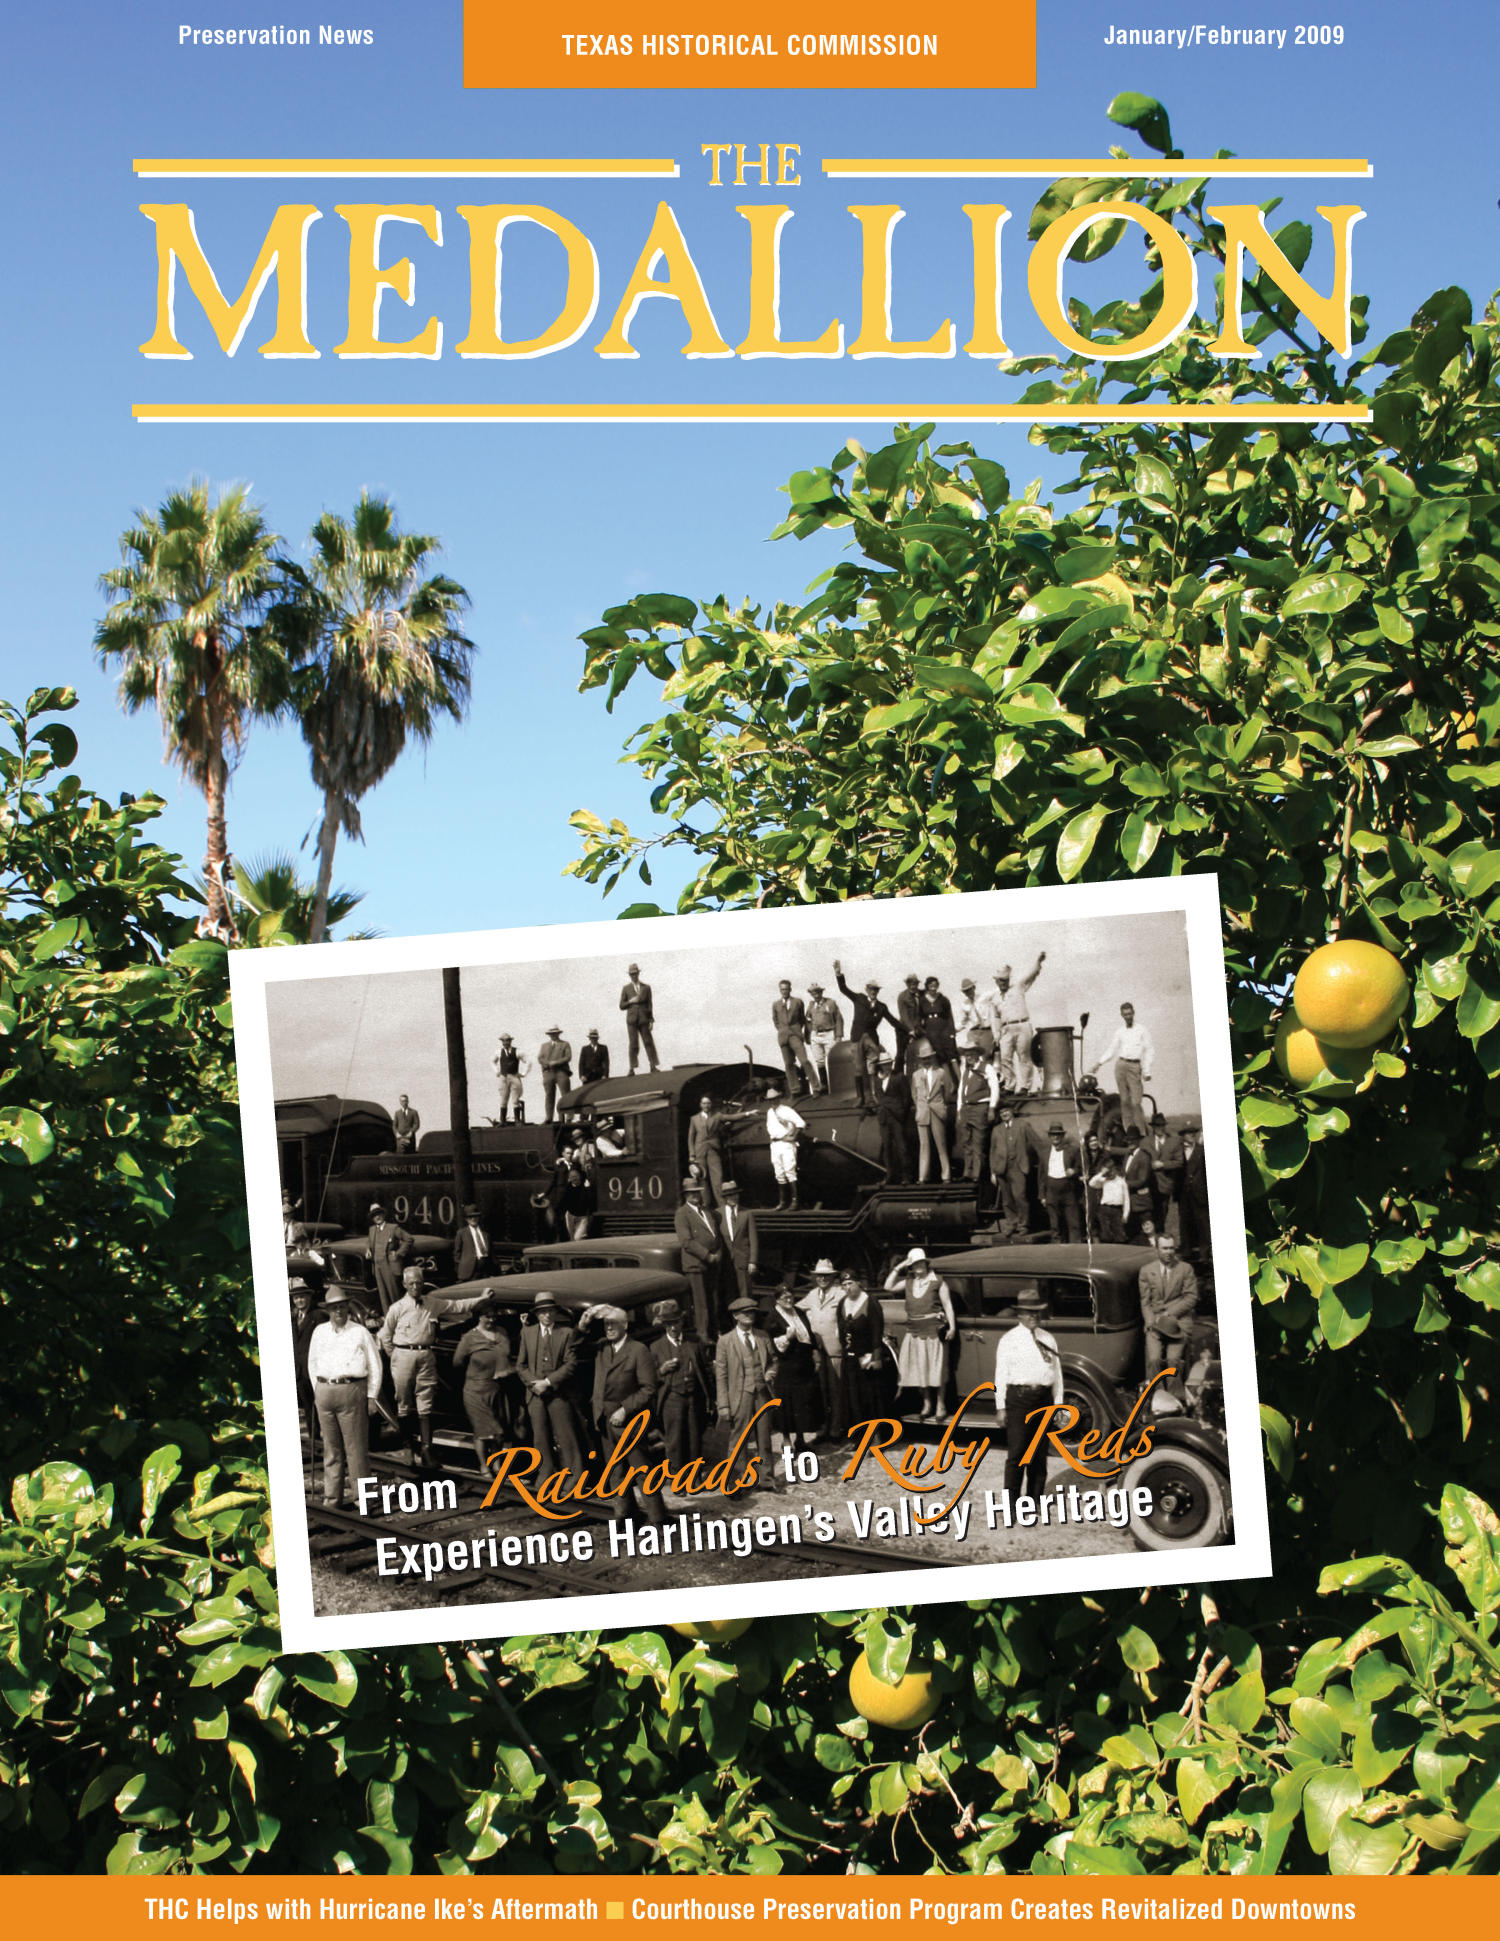 The Medallion, Volume 46, Number 1-2, January/February 2009                                                                                                      1